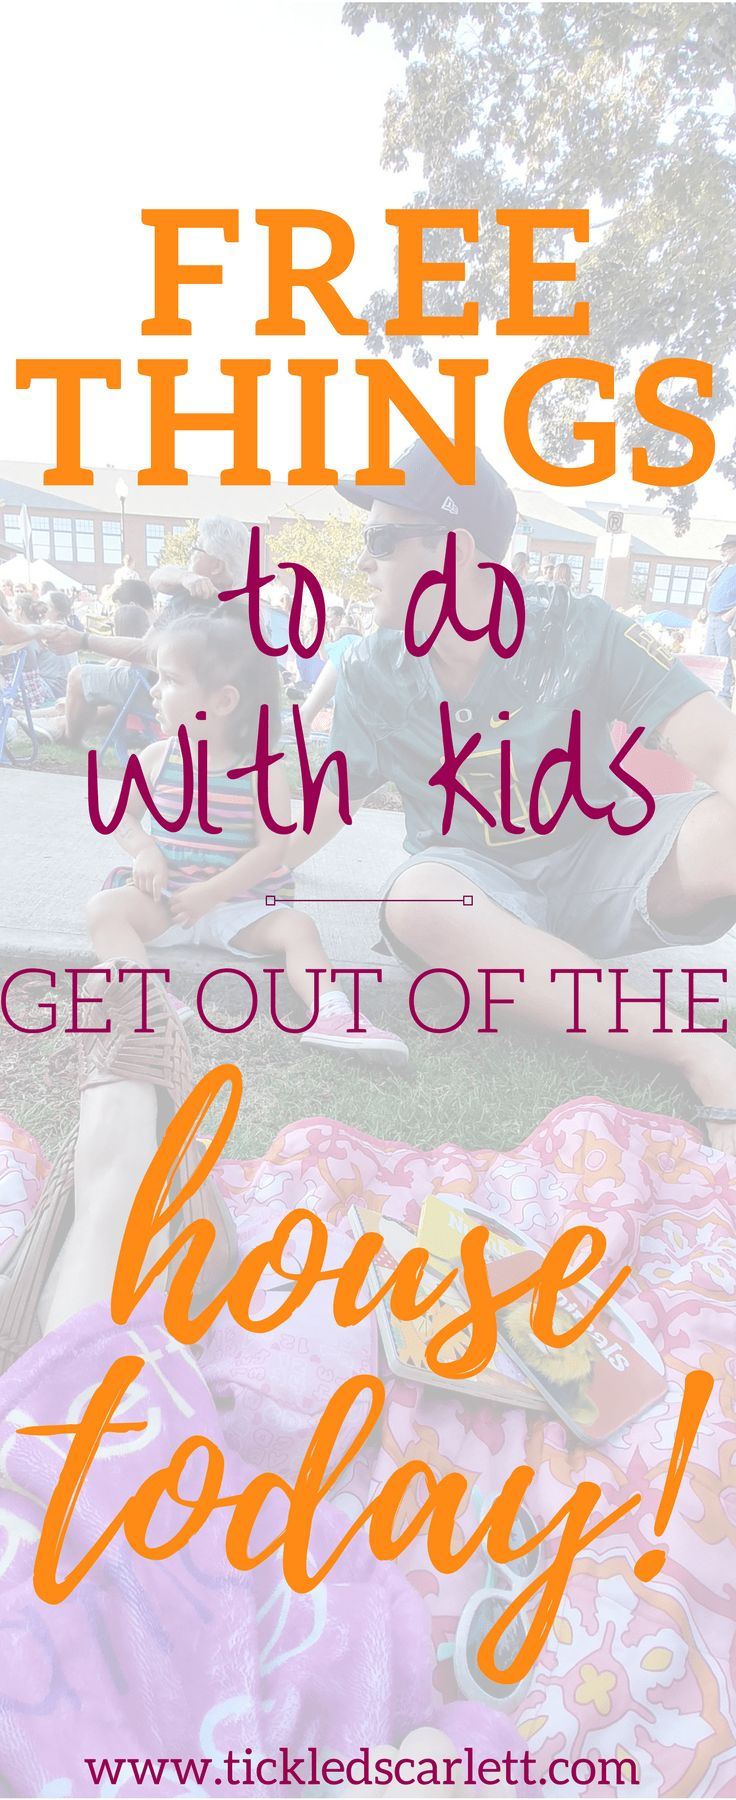 Free Things To Do With Kids_ Get Out Of The House Today!- Tickled Scarlett